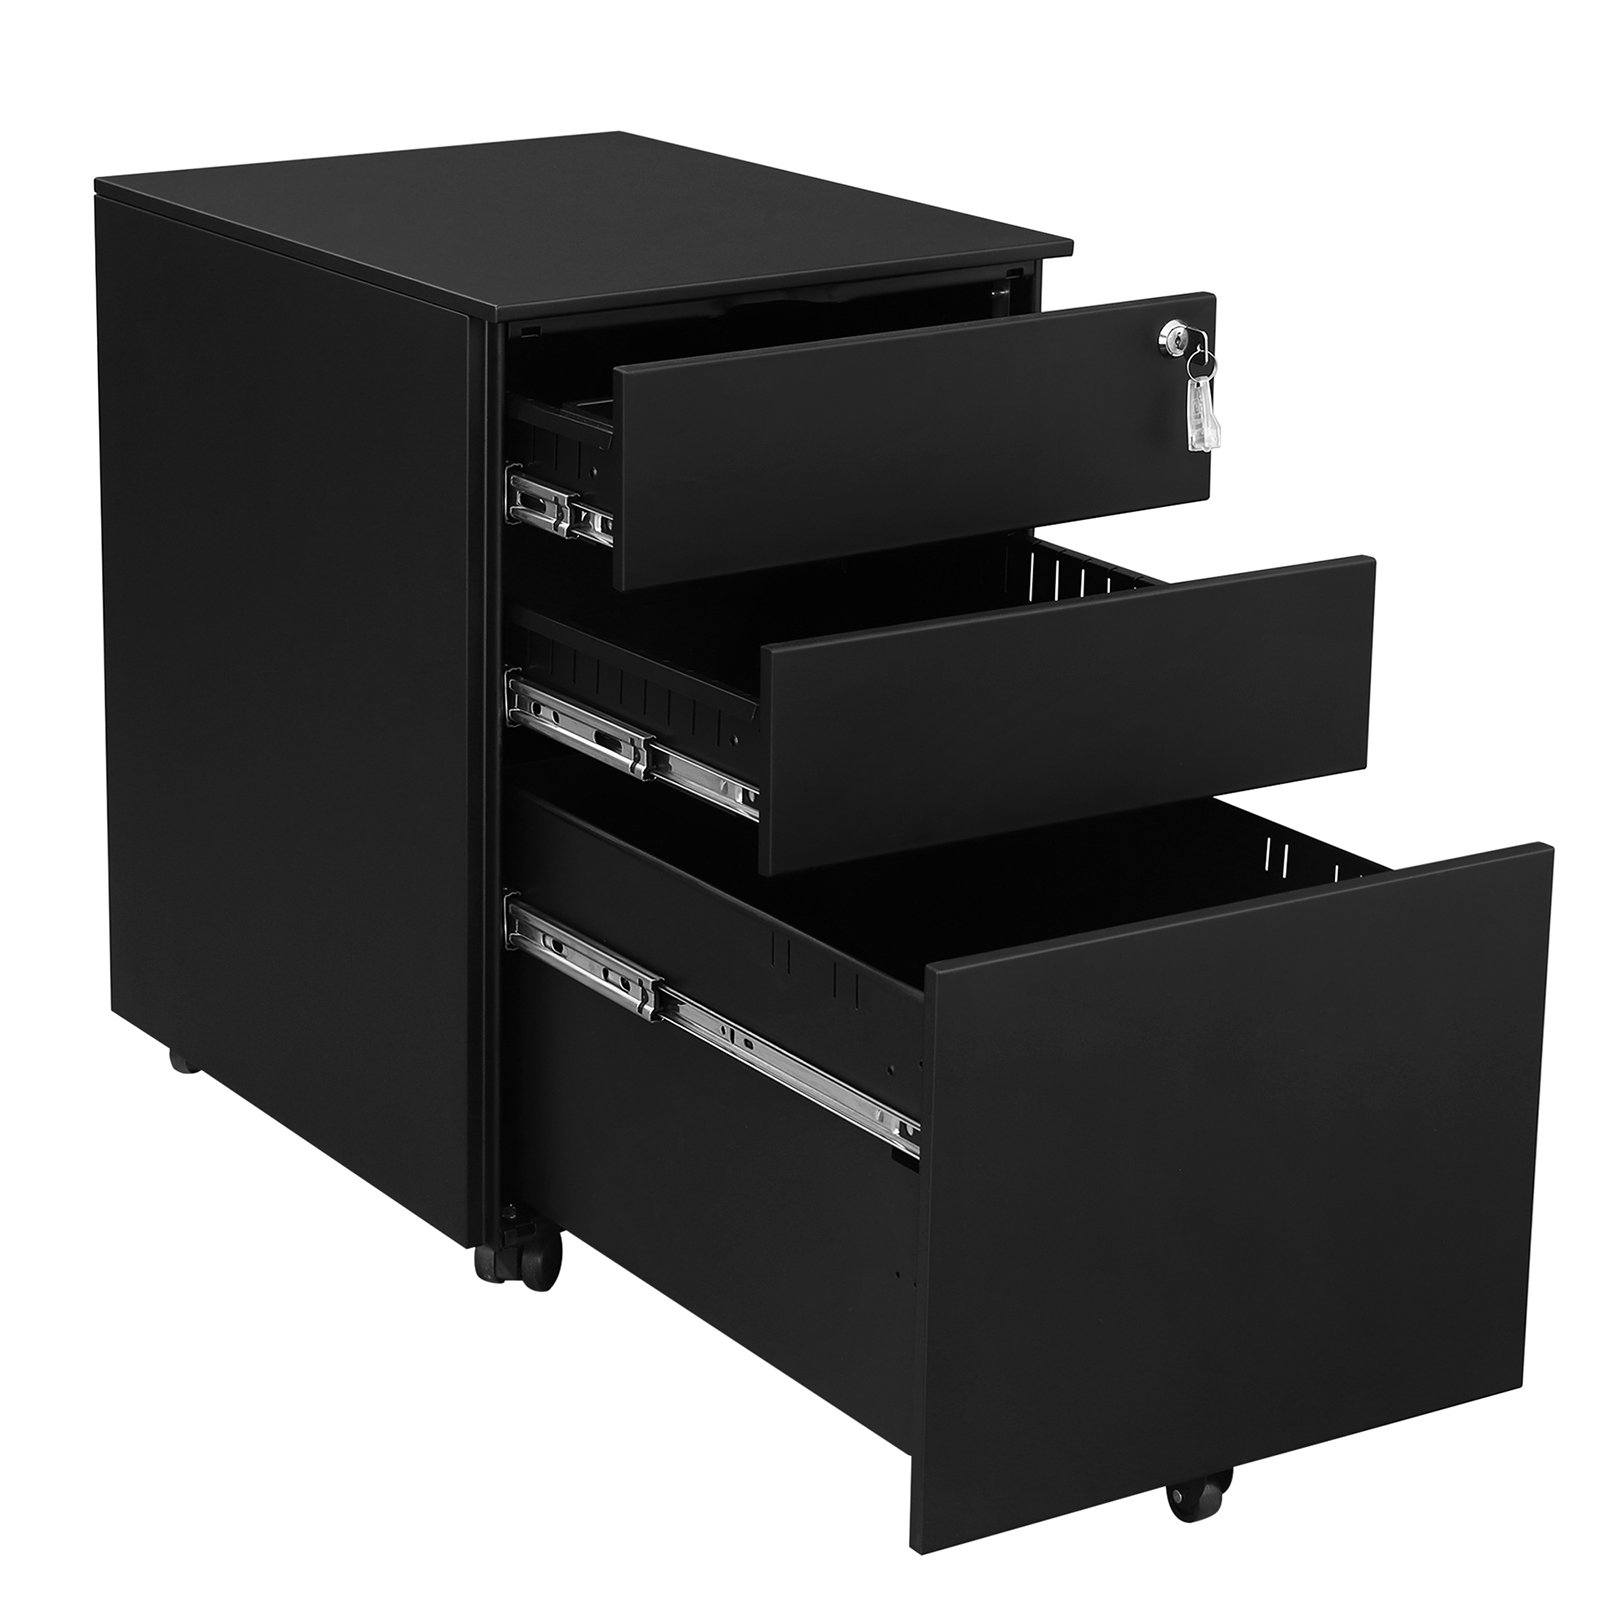 SONGMICS Steel File Cabinet 3 Drawer with Lock Mobile Pedestal Under Desk Fully Assembled Except Casters Black UOFC60BK by SONGMICS